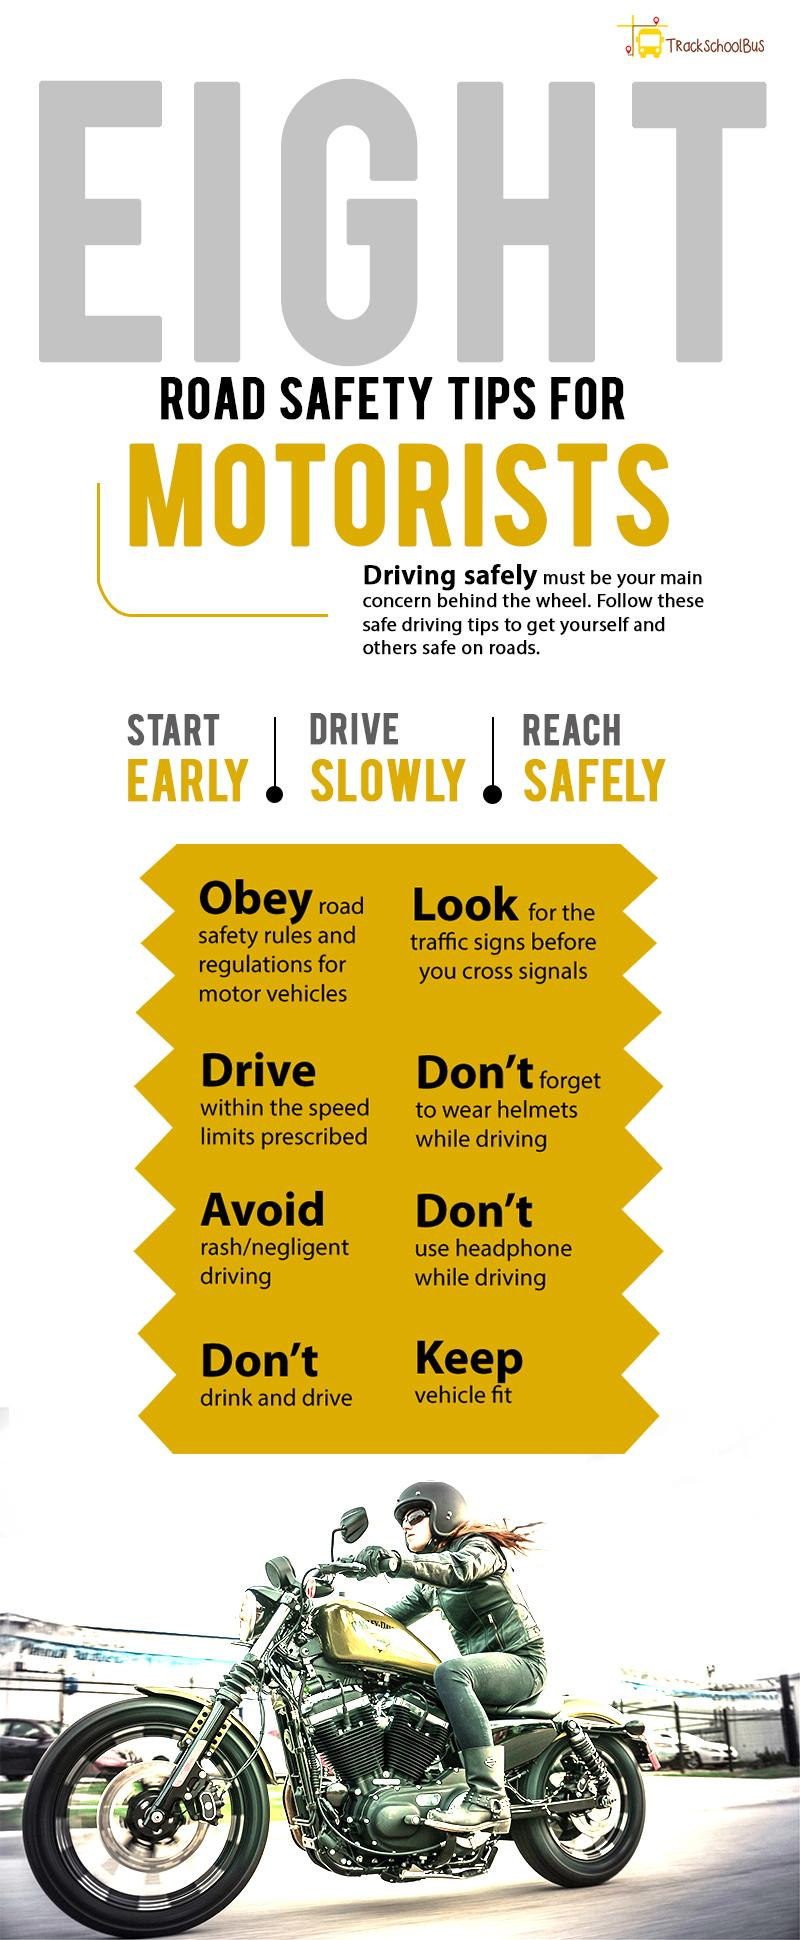 Road Safety Tips for Motorists_info